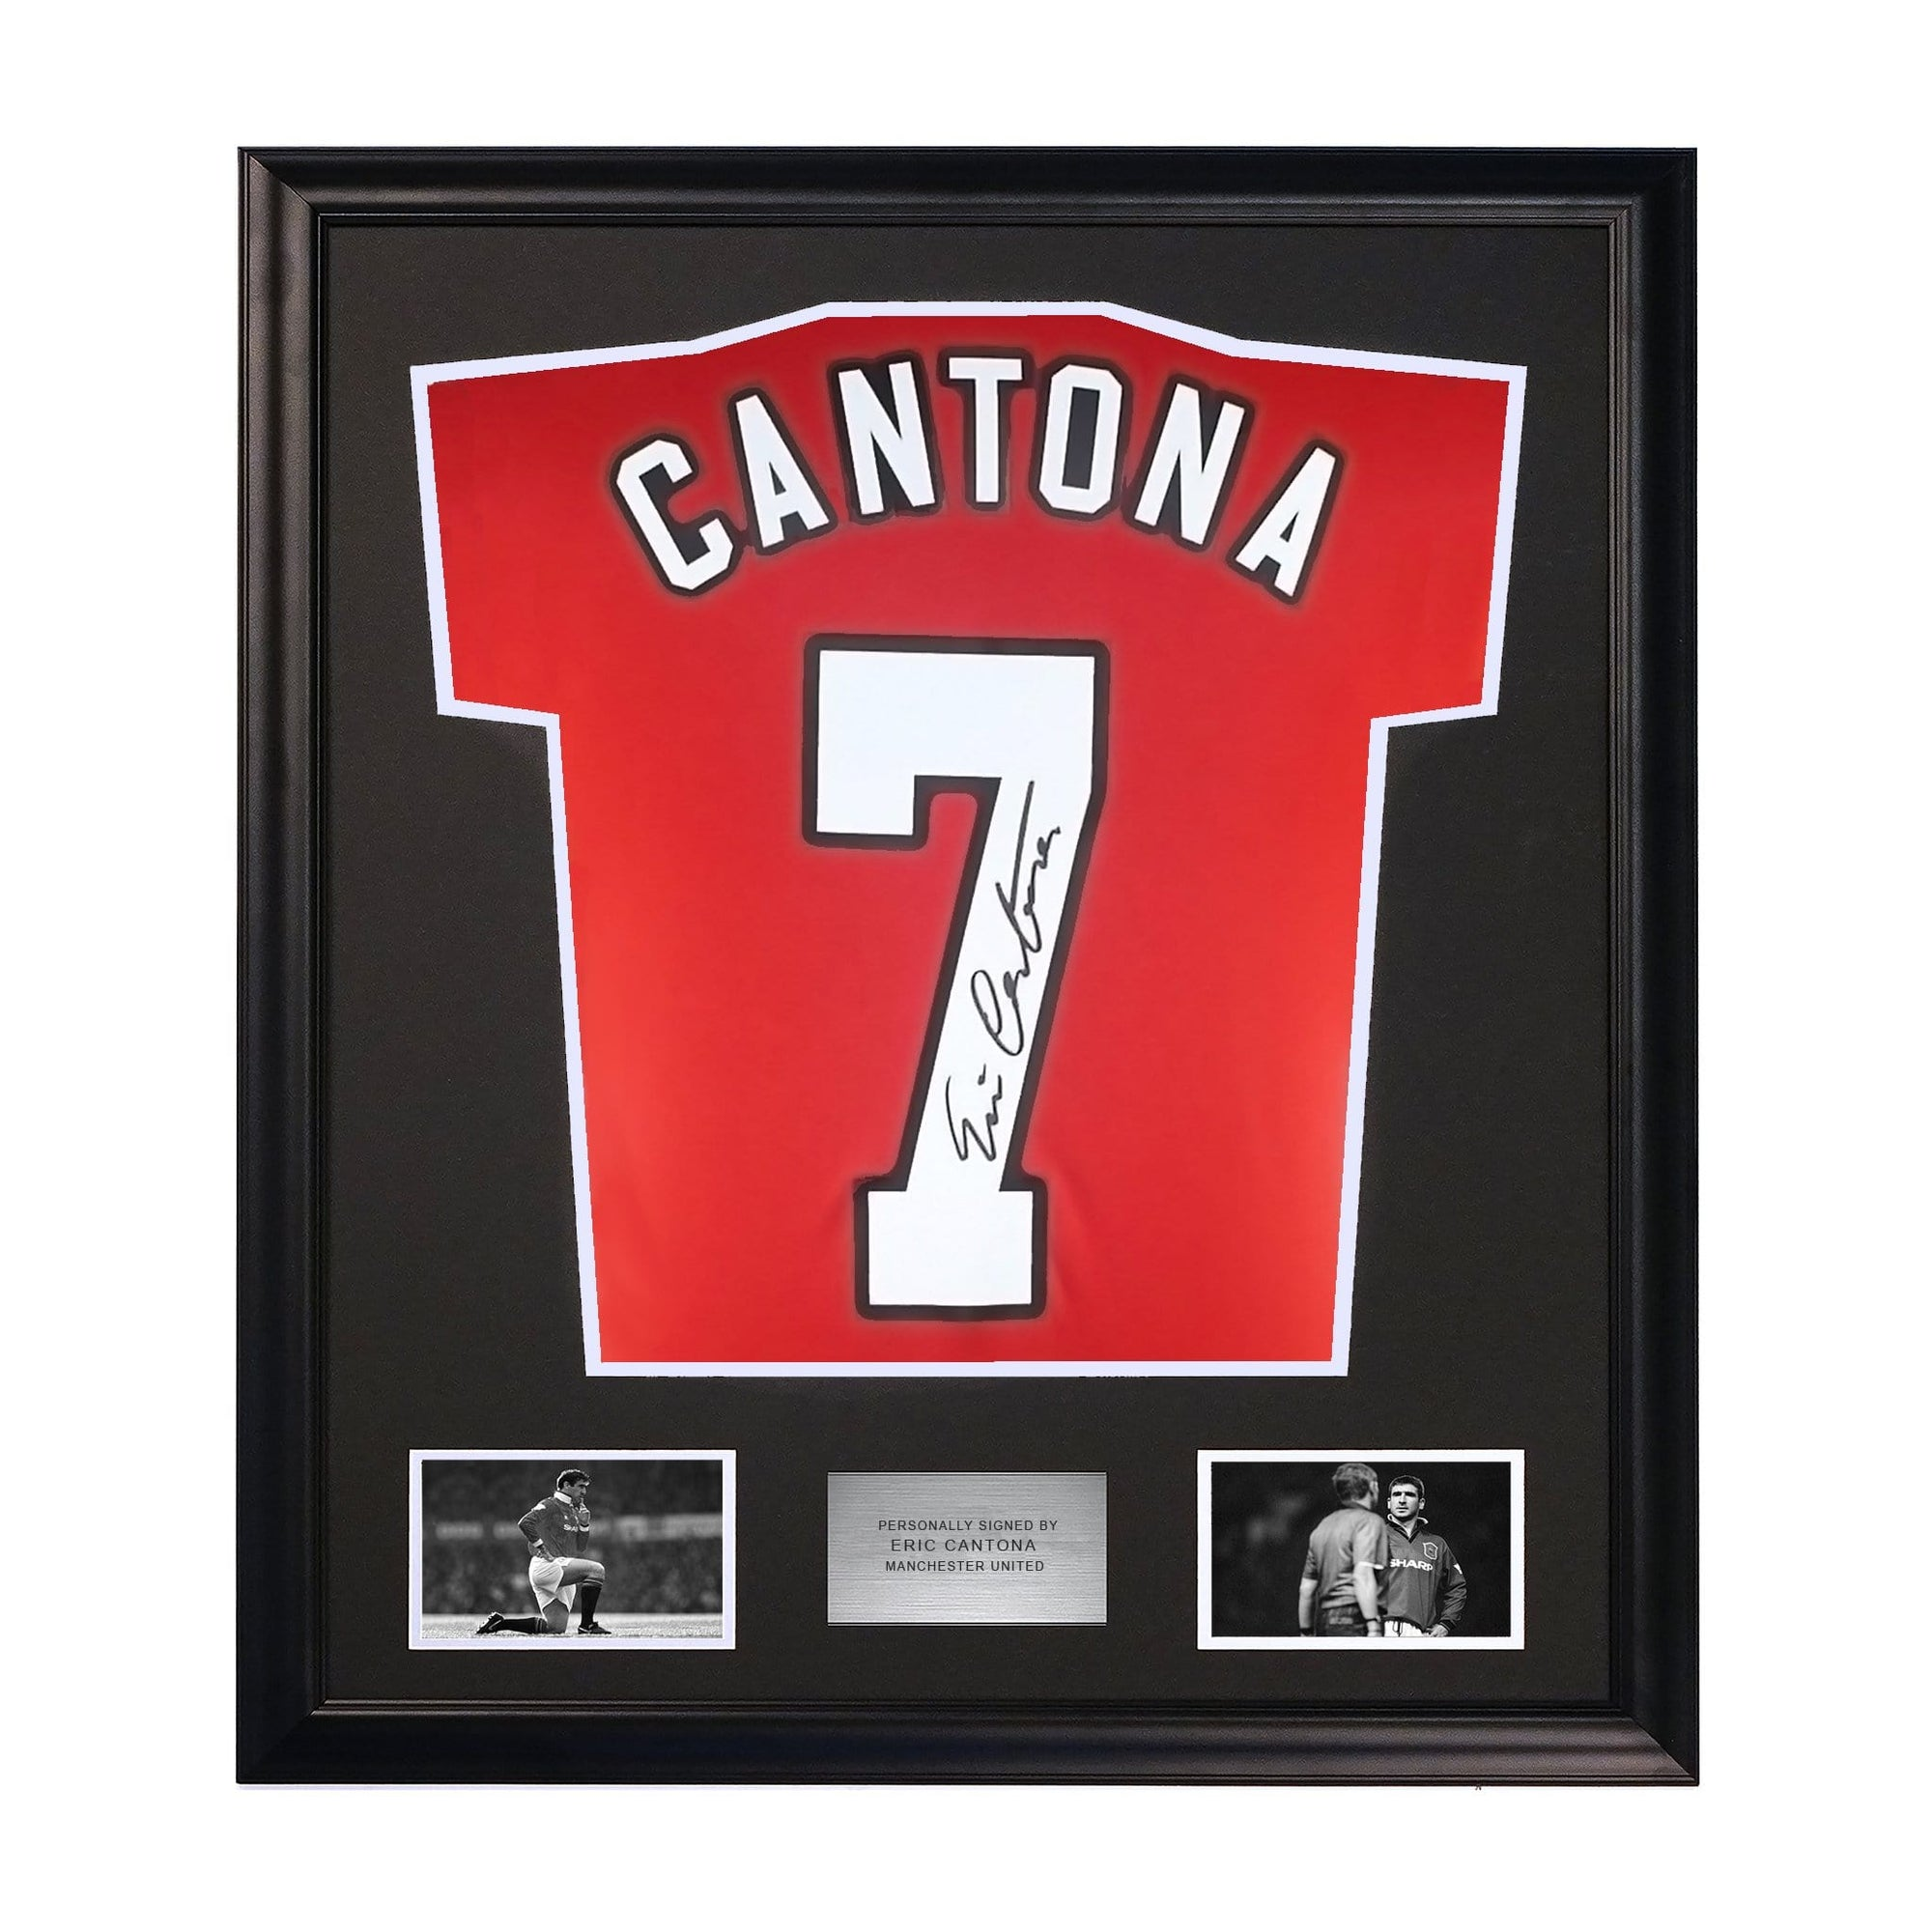 Eric Canton Manchester United Framed Signed Jersey